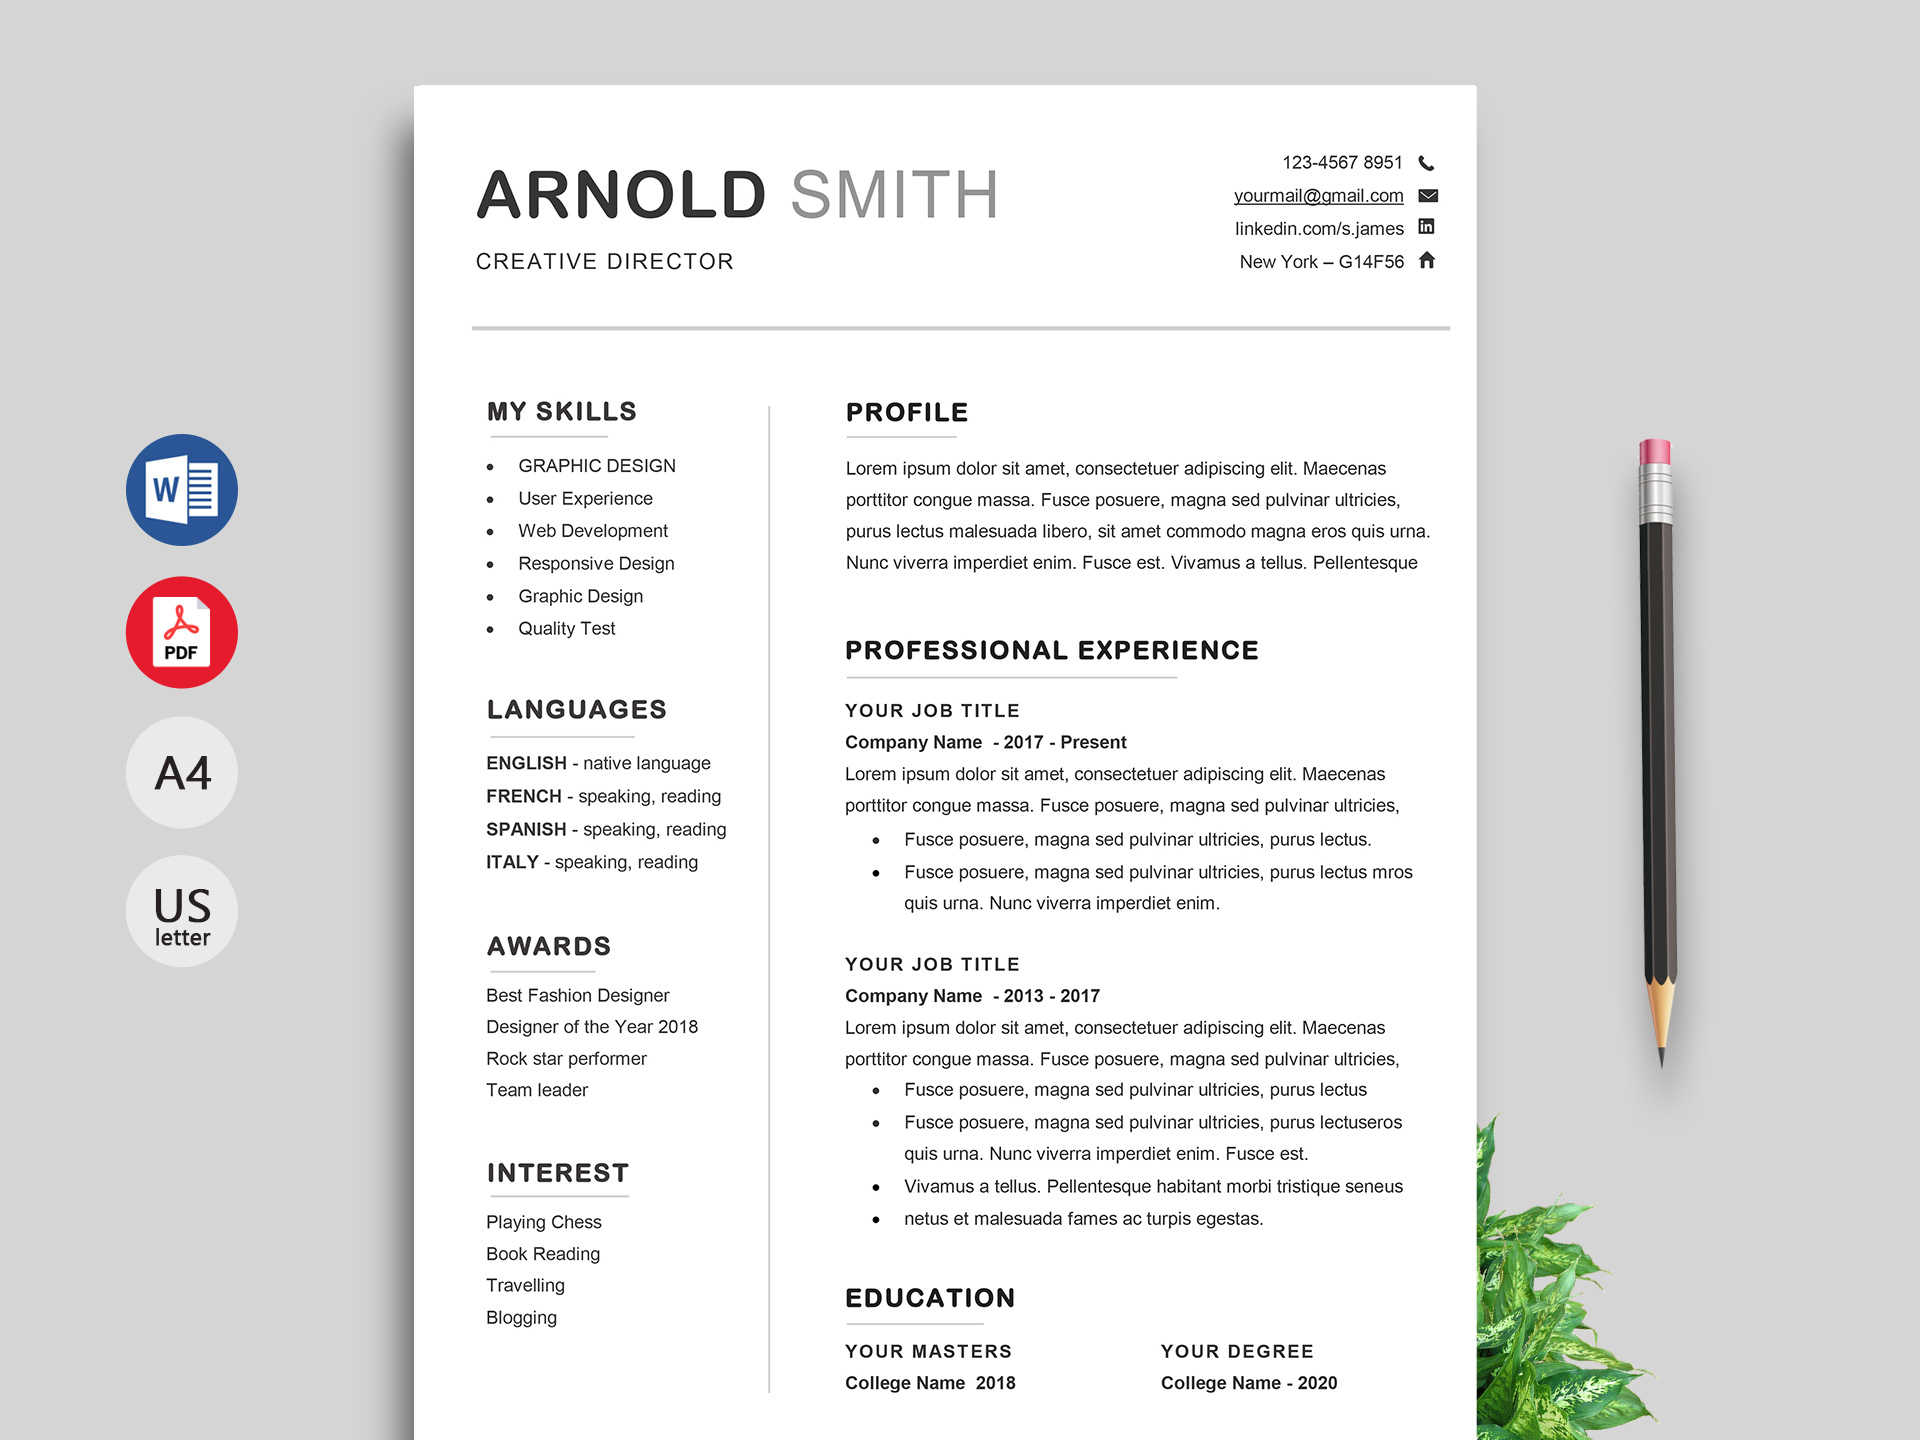 free resume cv templates in word format resumekraft template writing services local Resume Free Resume Template Download 2020